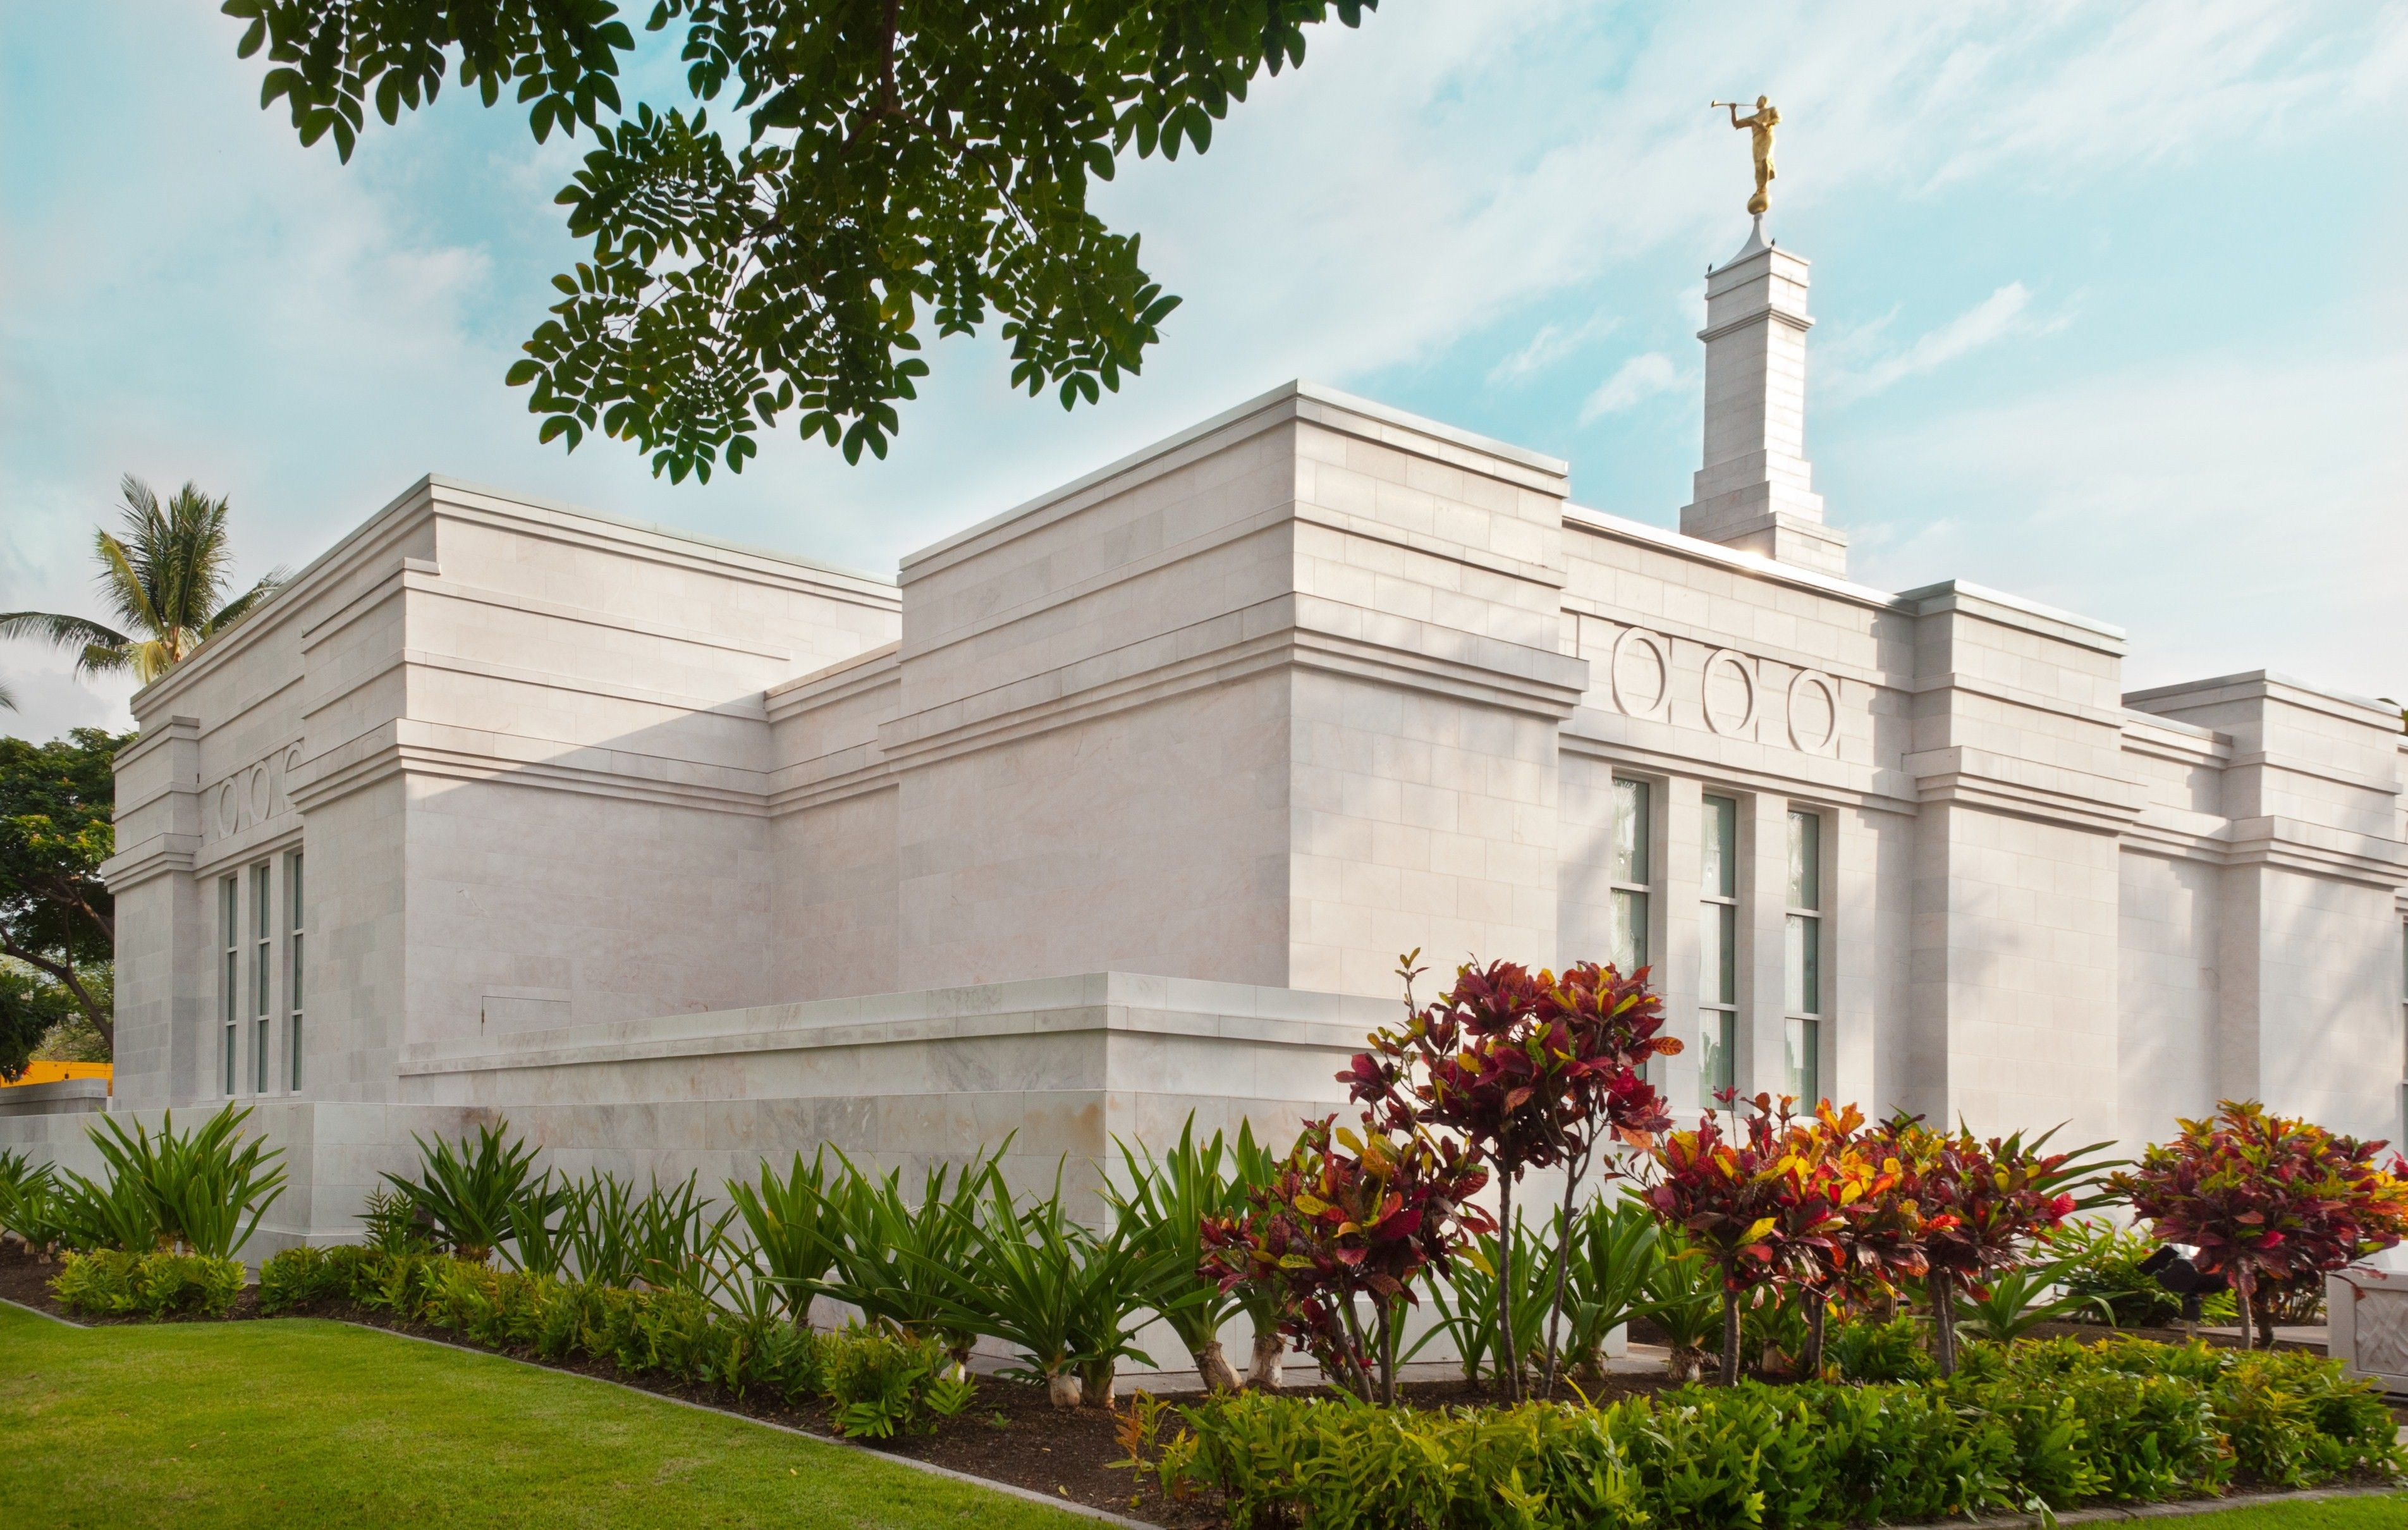 A side view of the Kona Hawaii Temple, including scenery and the exterior of the temple.